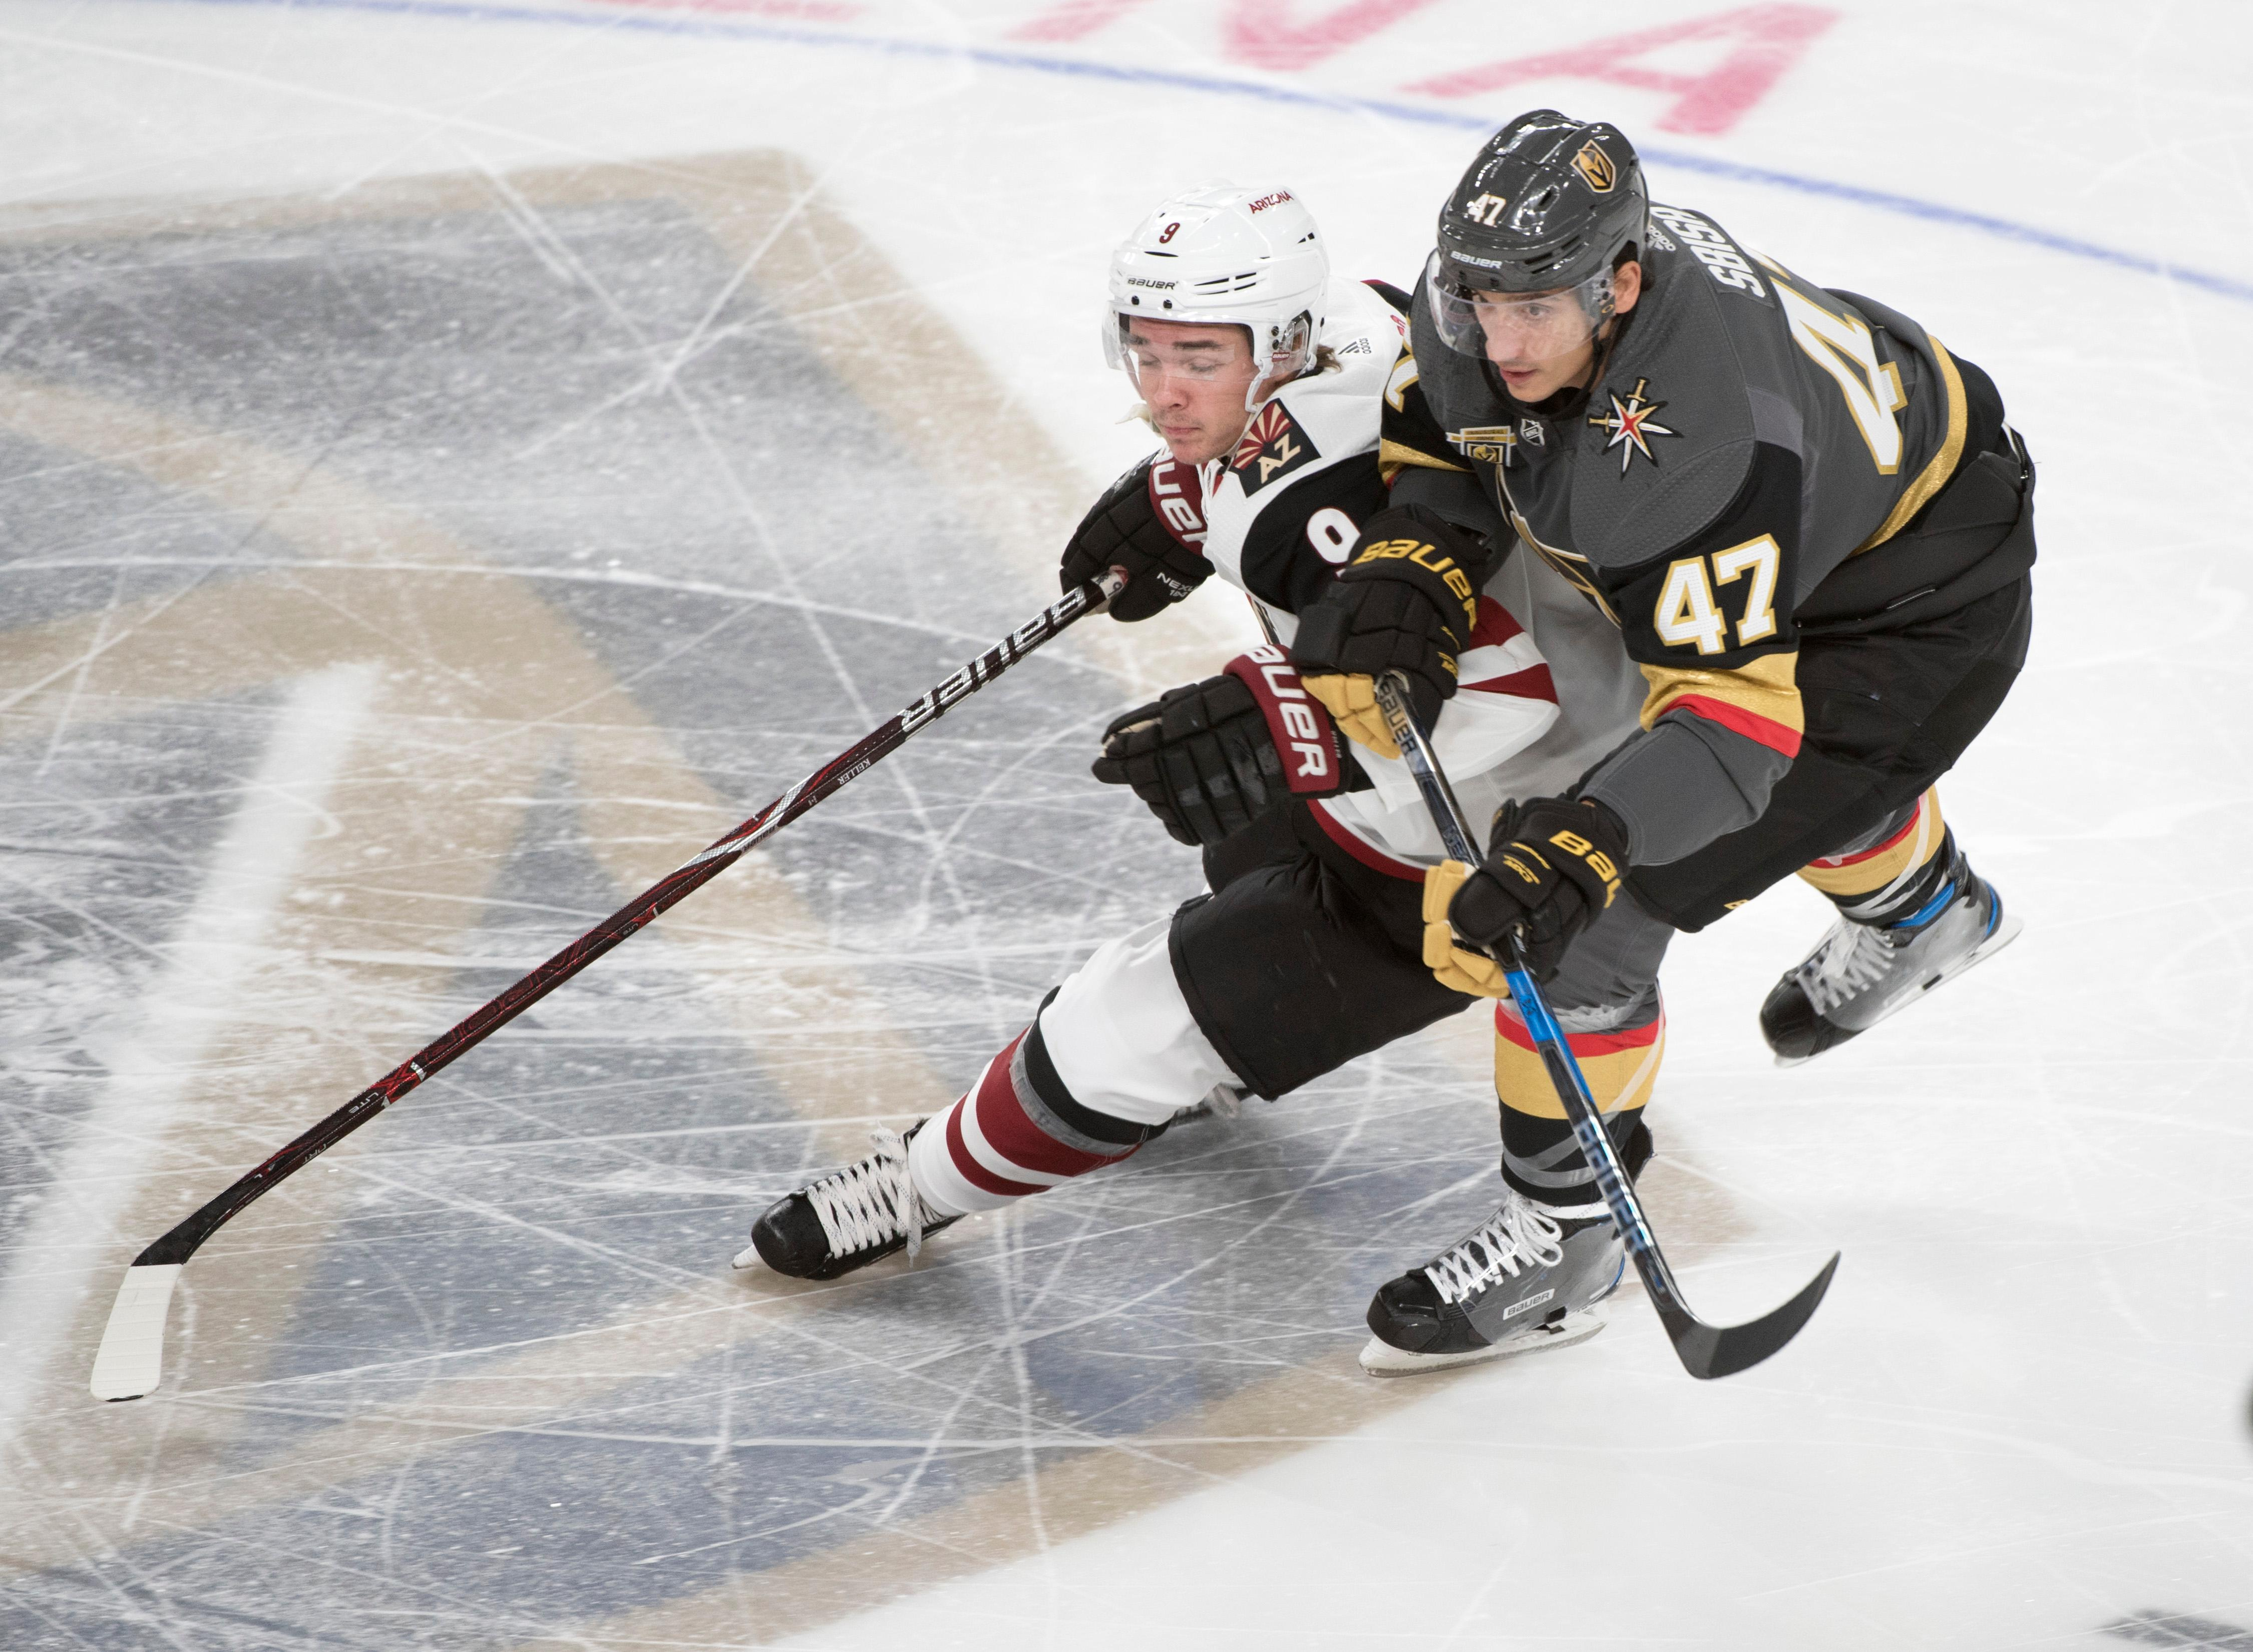 Arizona Coyotes wing Clayton Keller (9) and Vegas Golden Knights defenseman Luca Sbisa (47) fight for the puck during the Knights home opener Tuesday, Oct. 10, 2017, at the T-Mobile Arena. The Knights won 5-2 to extend their winning streak to 3-0. CREDIT: Sam Morris/Las Vegas News Bureau